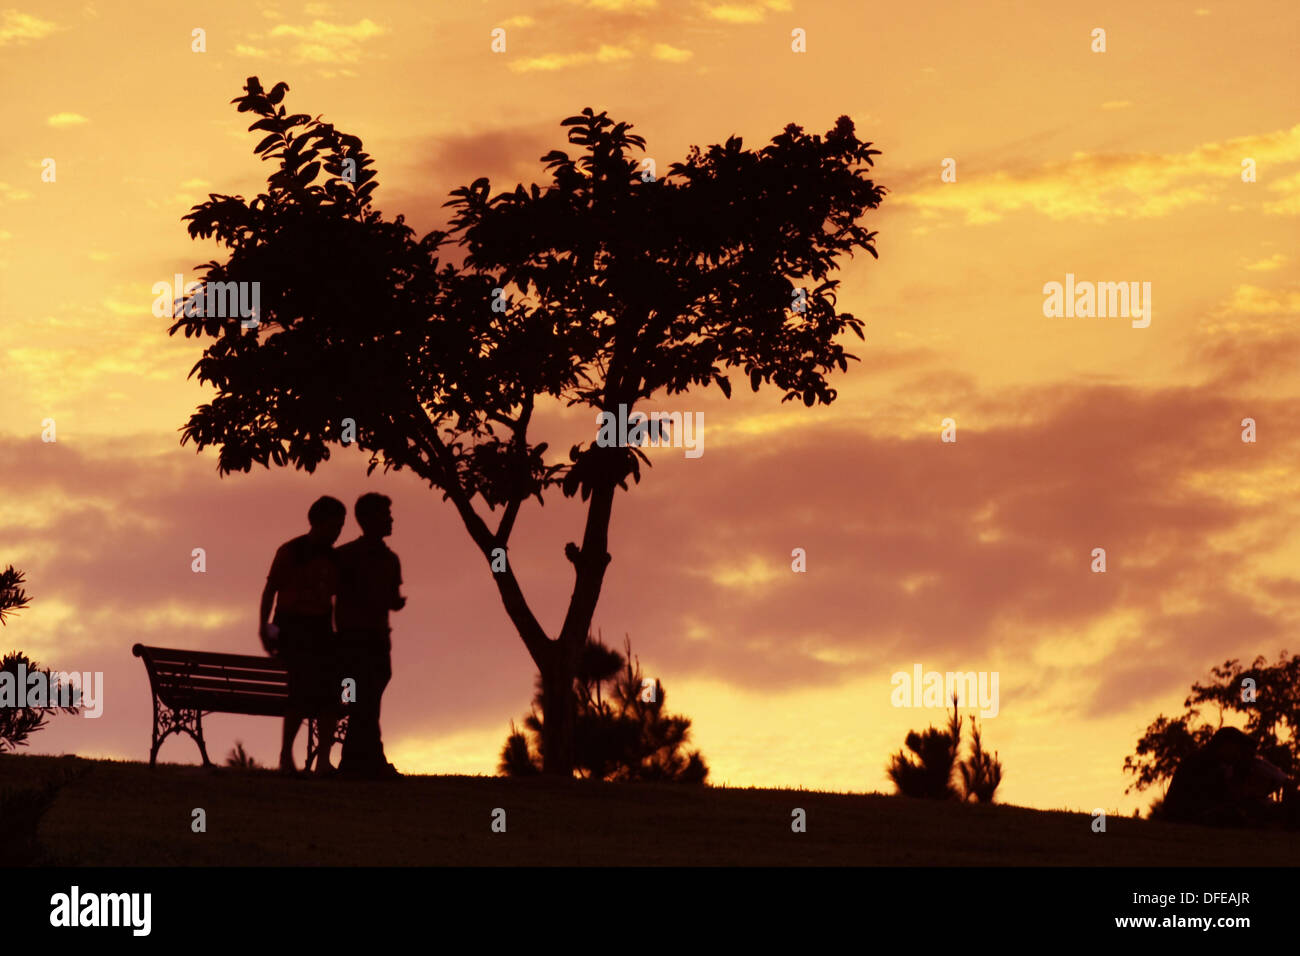 2 persons walking in sunset - Stock Image